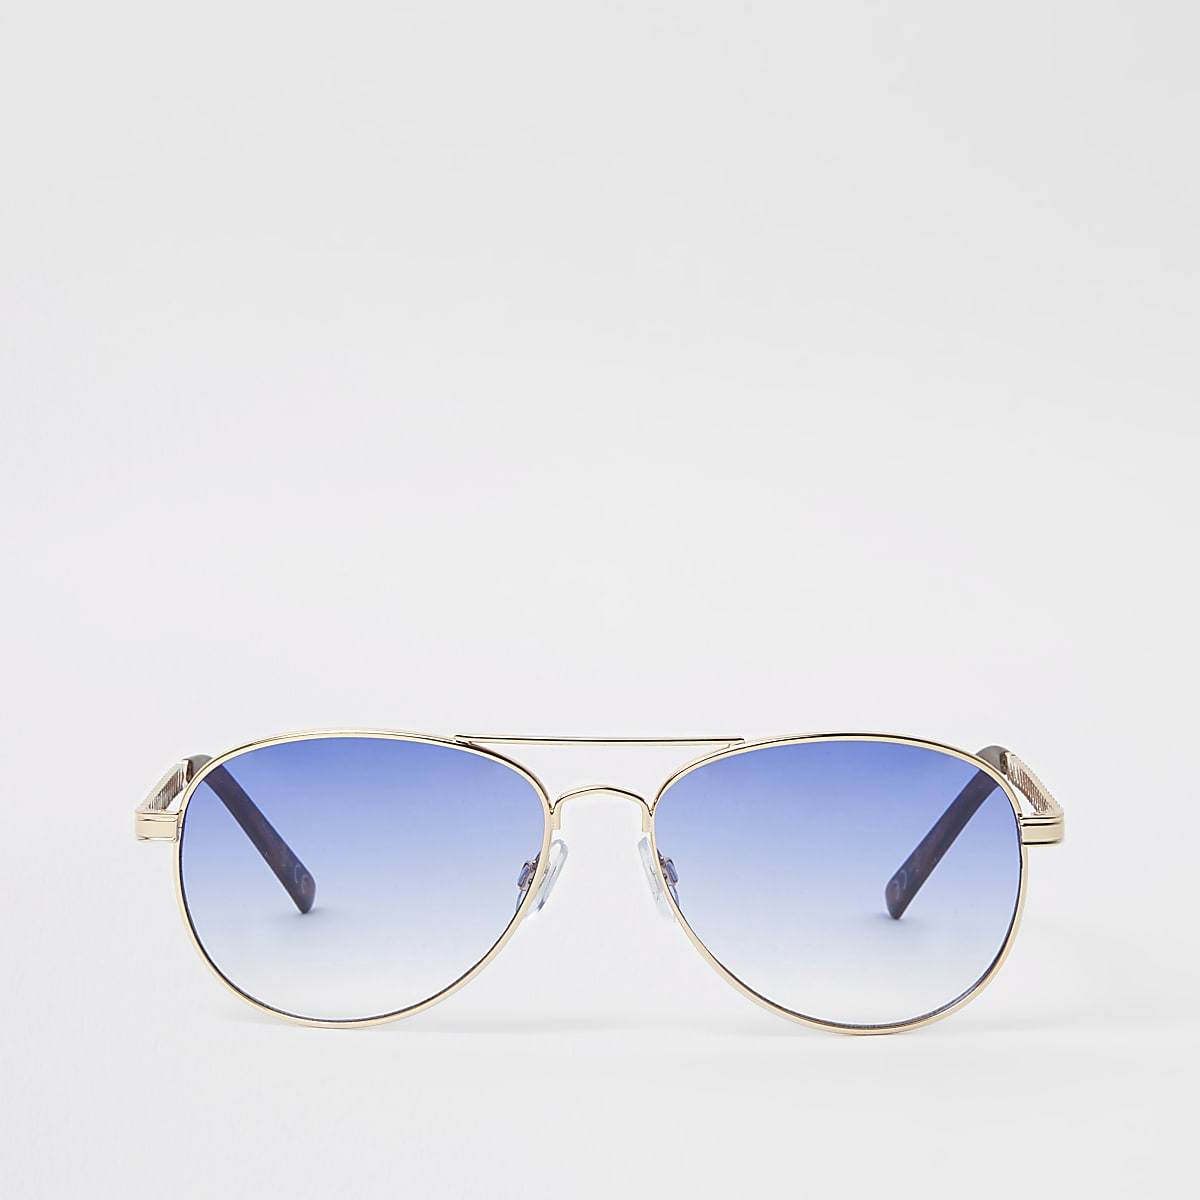 Gold tone light blue lens aviator sunglasses